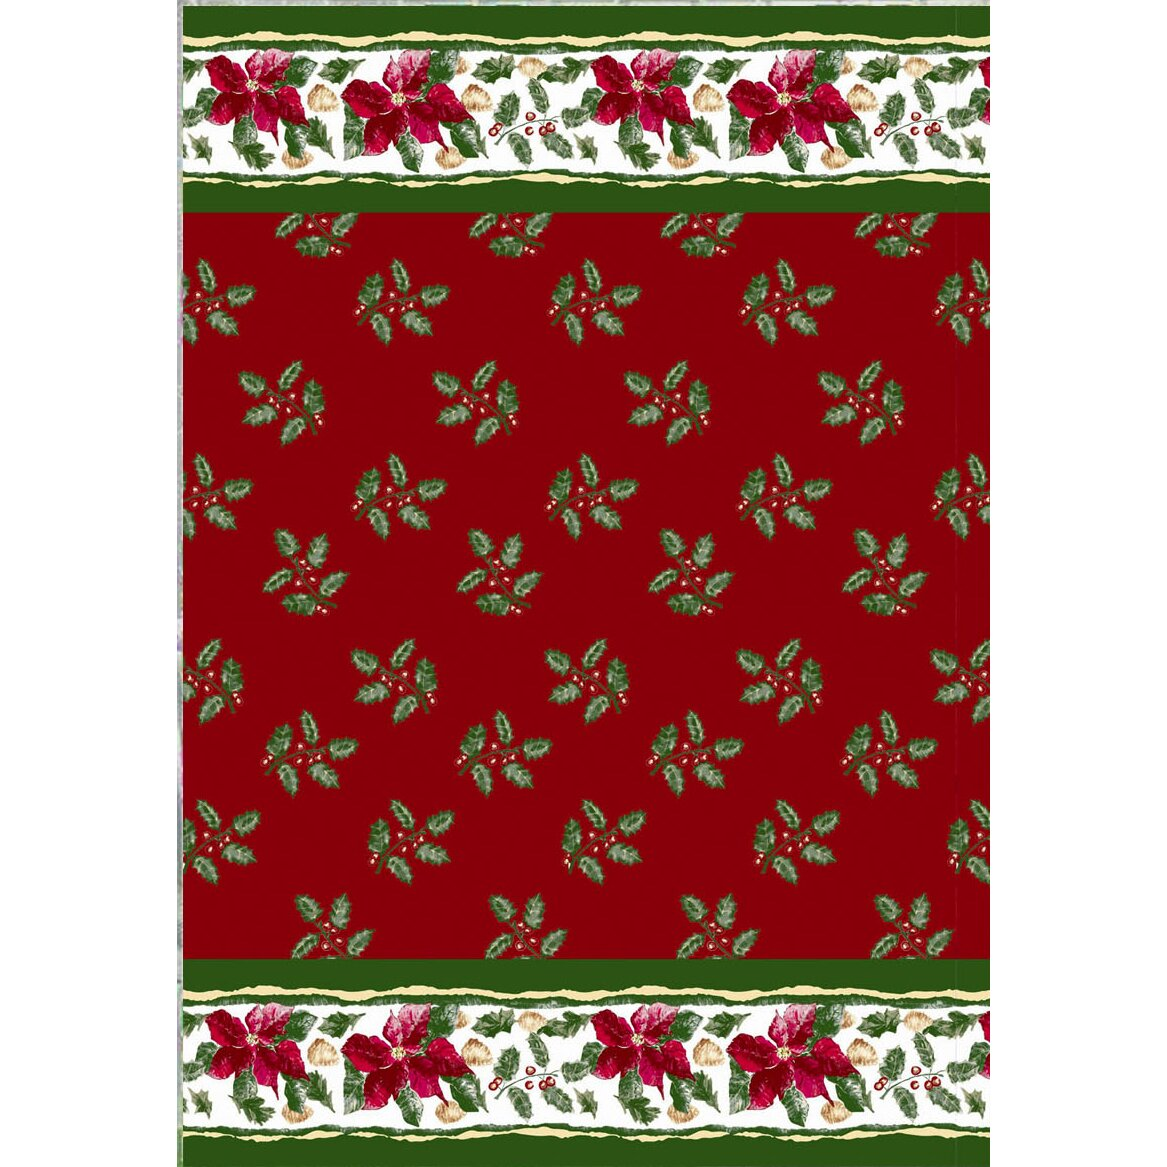 Carnation Home Fashions Christmas Floral Holiday Print Shower Curtain Set Reviews Wayfair